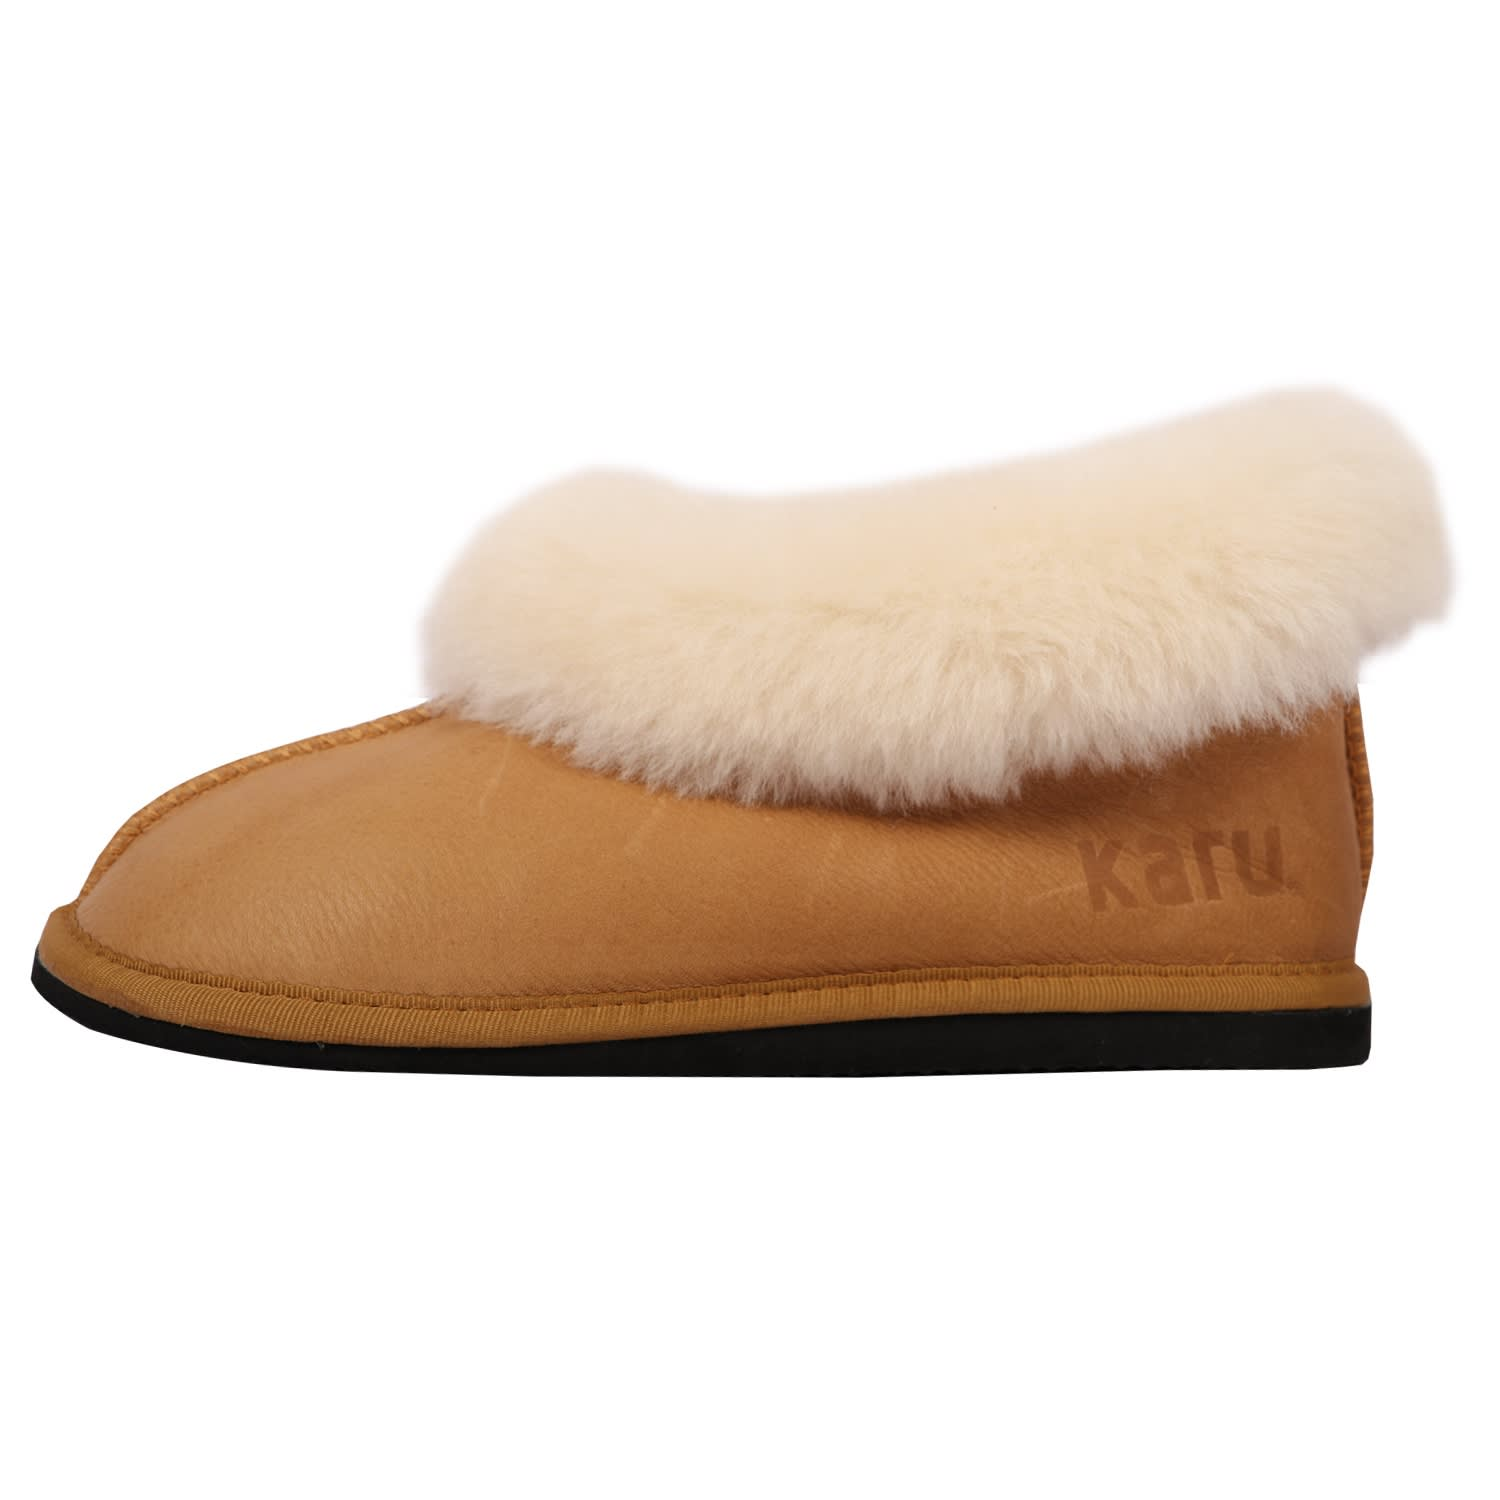 Karu Sheepskin Wool Slippers (Size: 8-12)